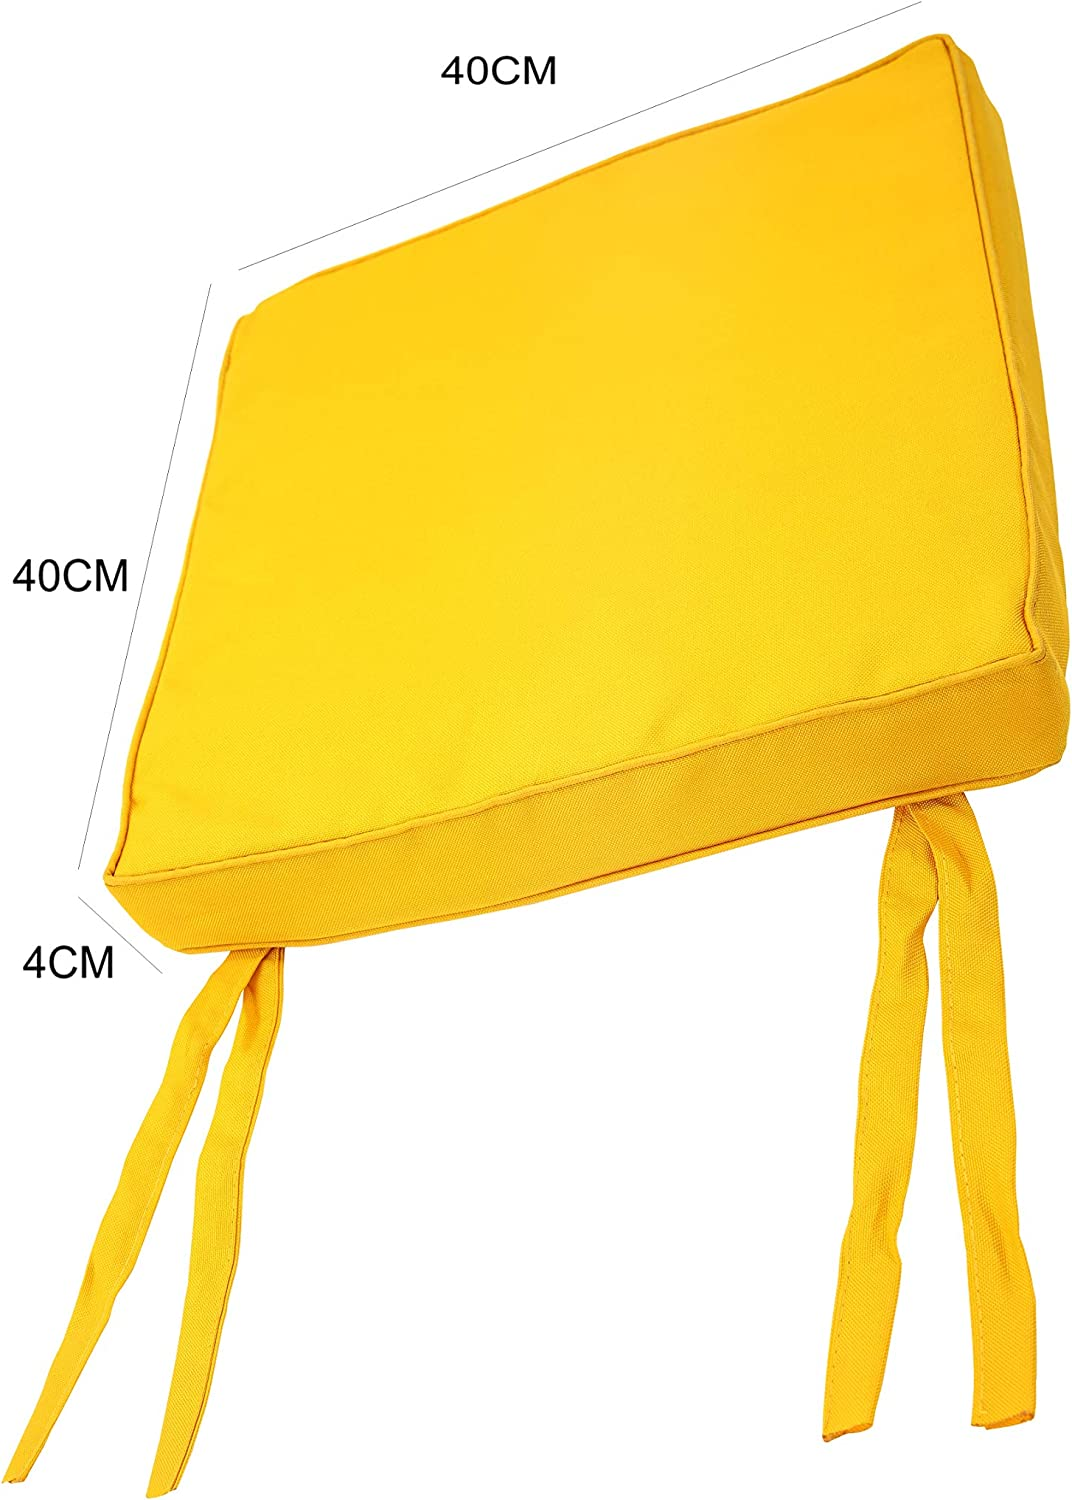 WATERPROOF Chair Cushion Seat Pads OUTDOOR Tie On Garden Patio Removable Cover